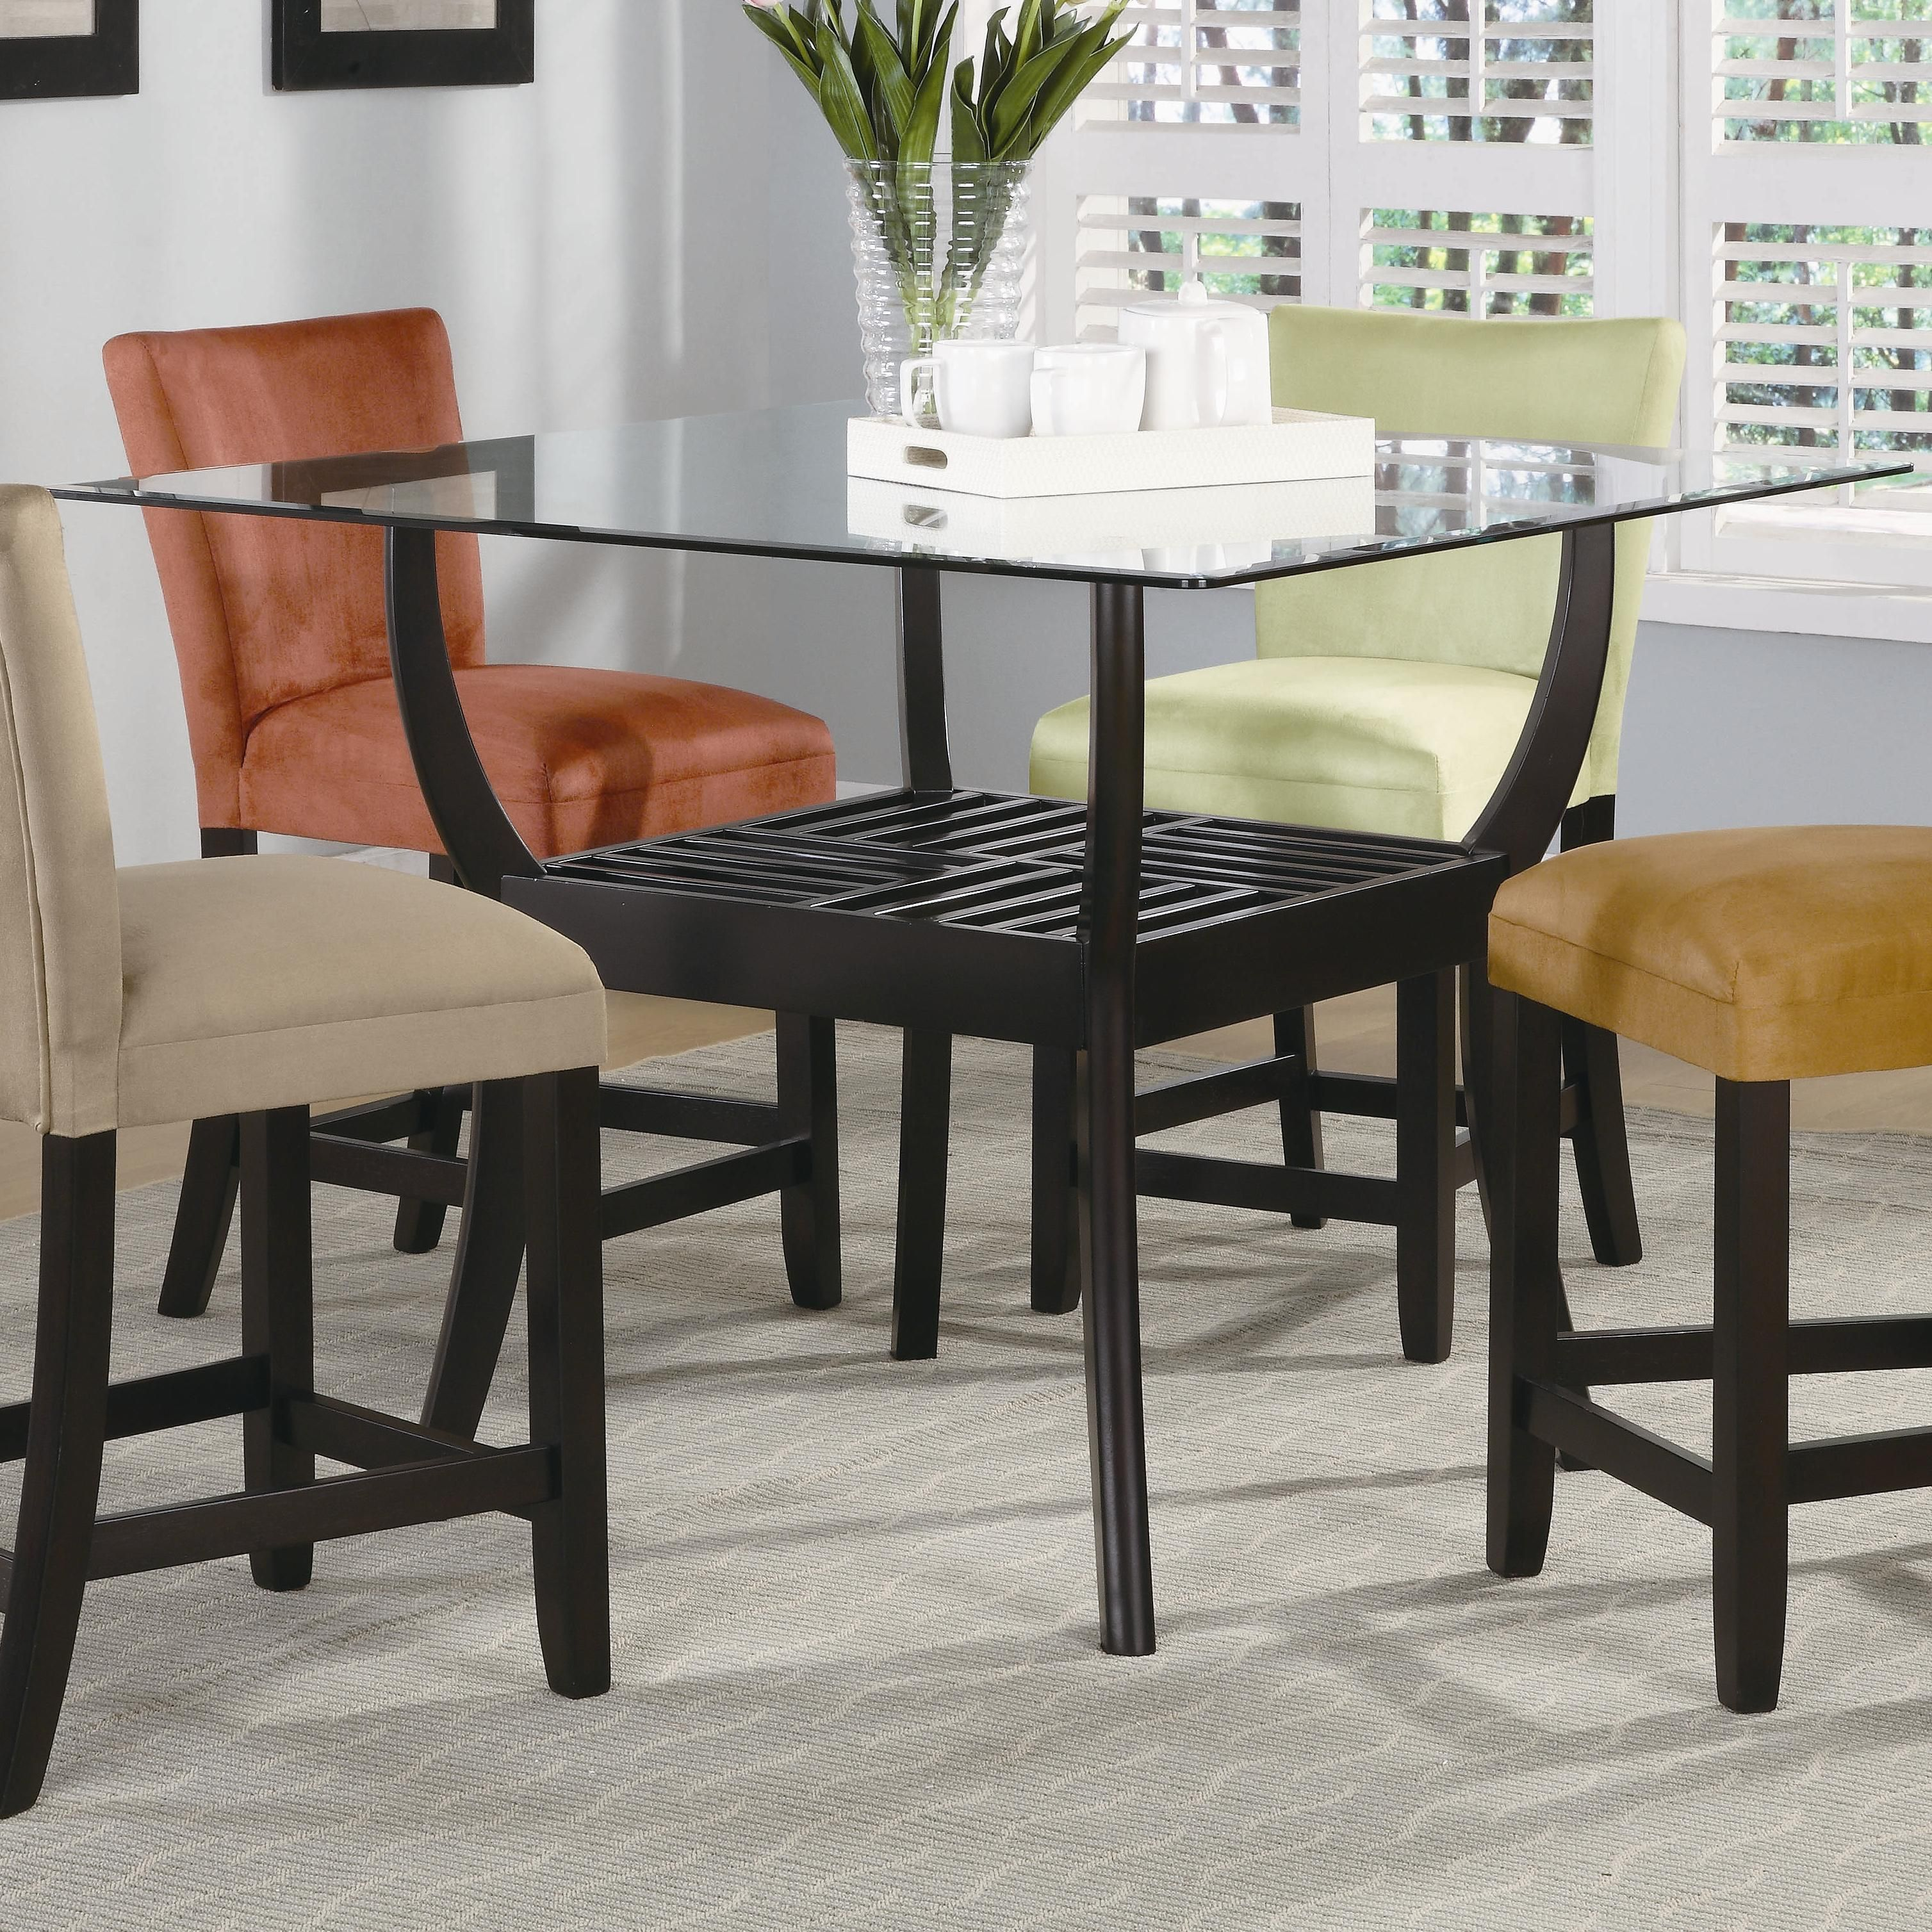 Engaging Counter height dining table glass Engaging